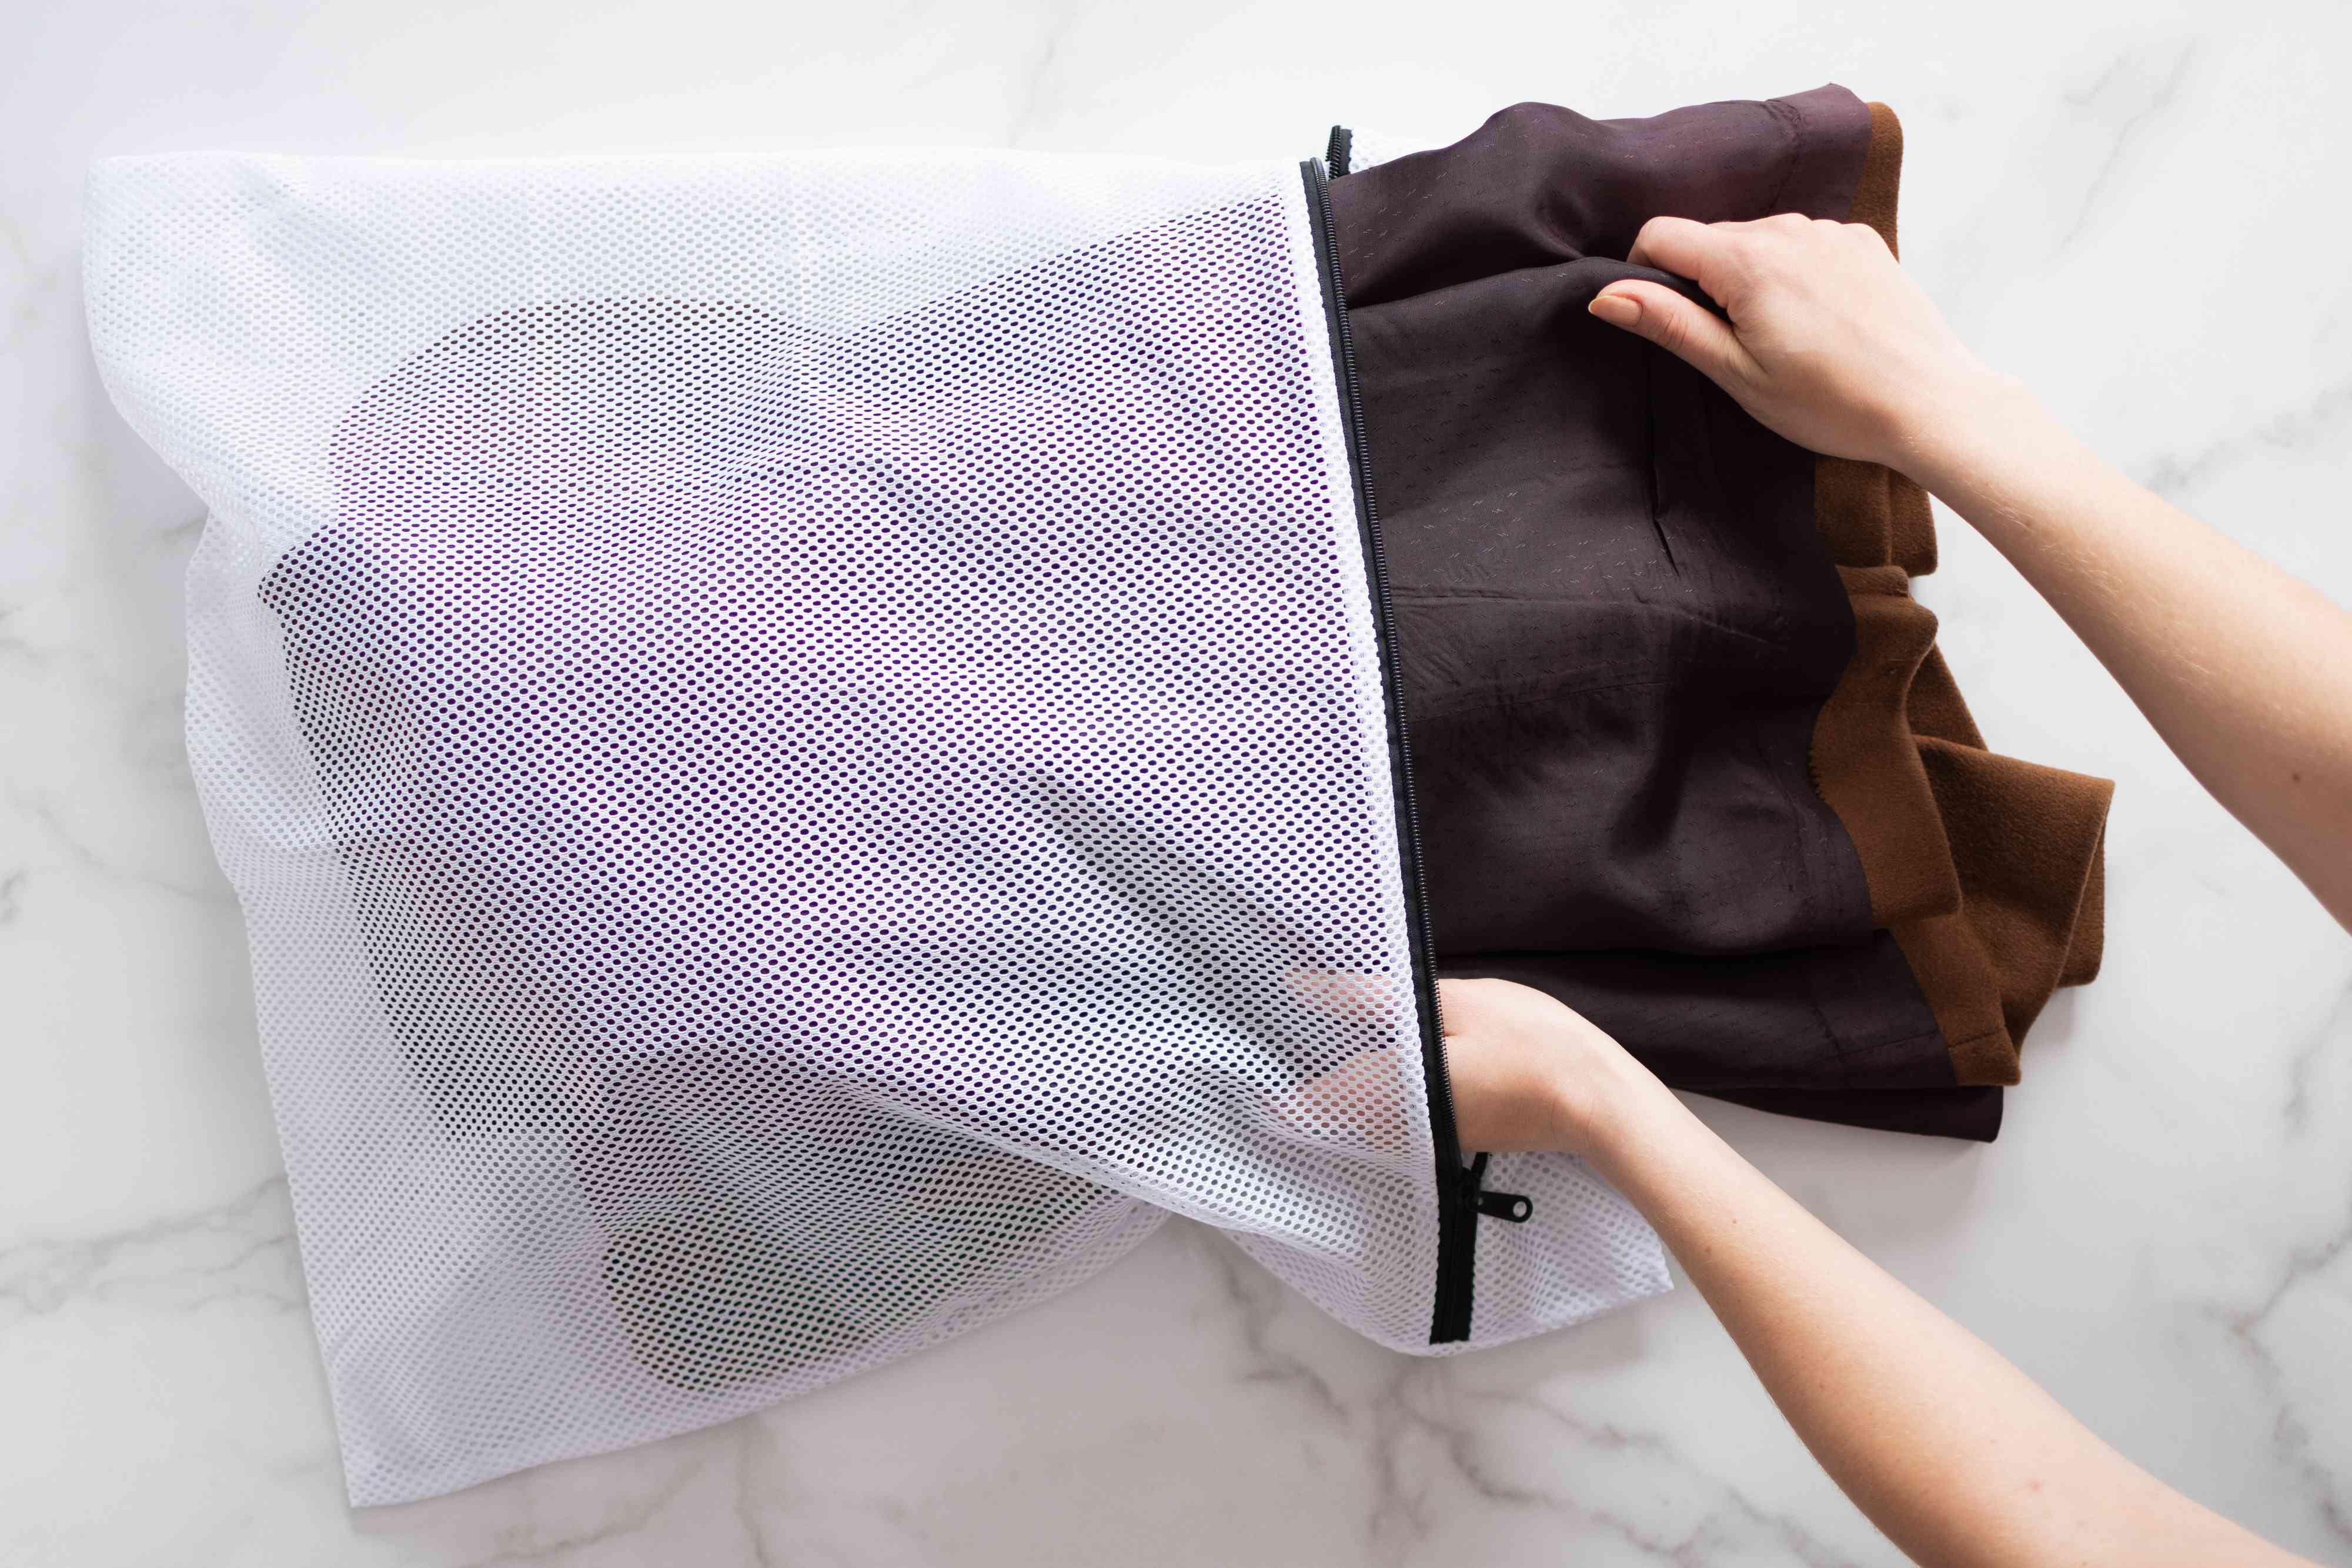 Brown wool coat placed into large mesh bag to be added to washing machine